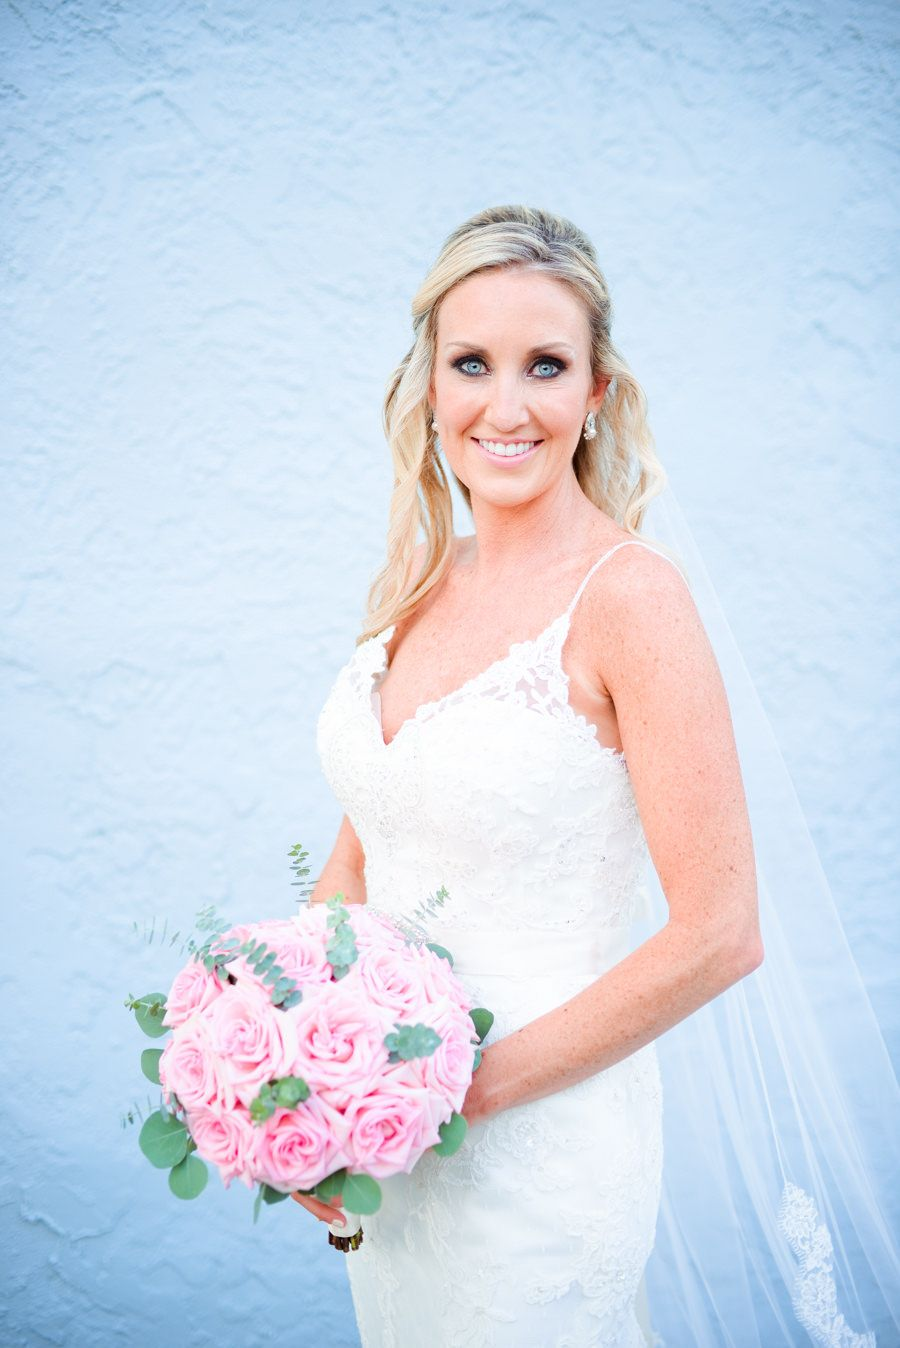 St. Pete Bridal Portrait in Lace Bridal Wedding Dress Blush Pink Rose Bouquet